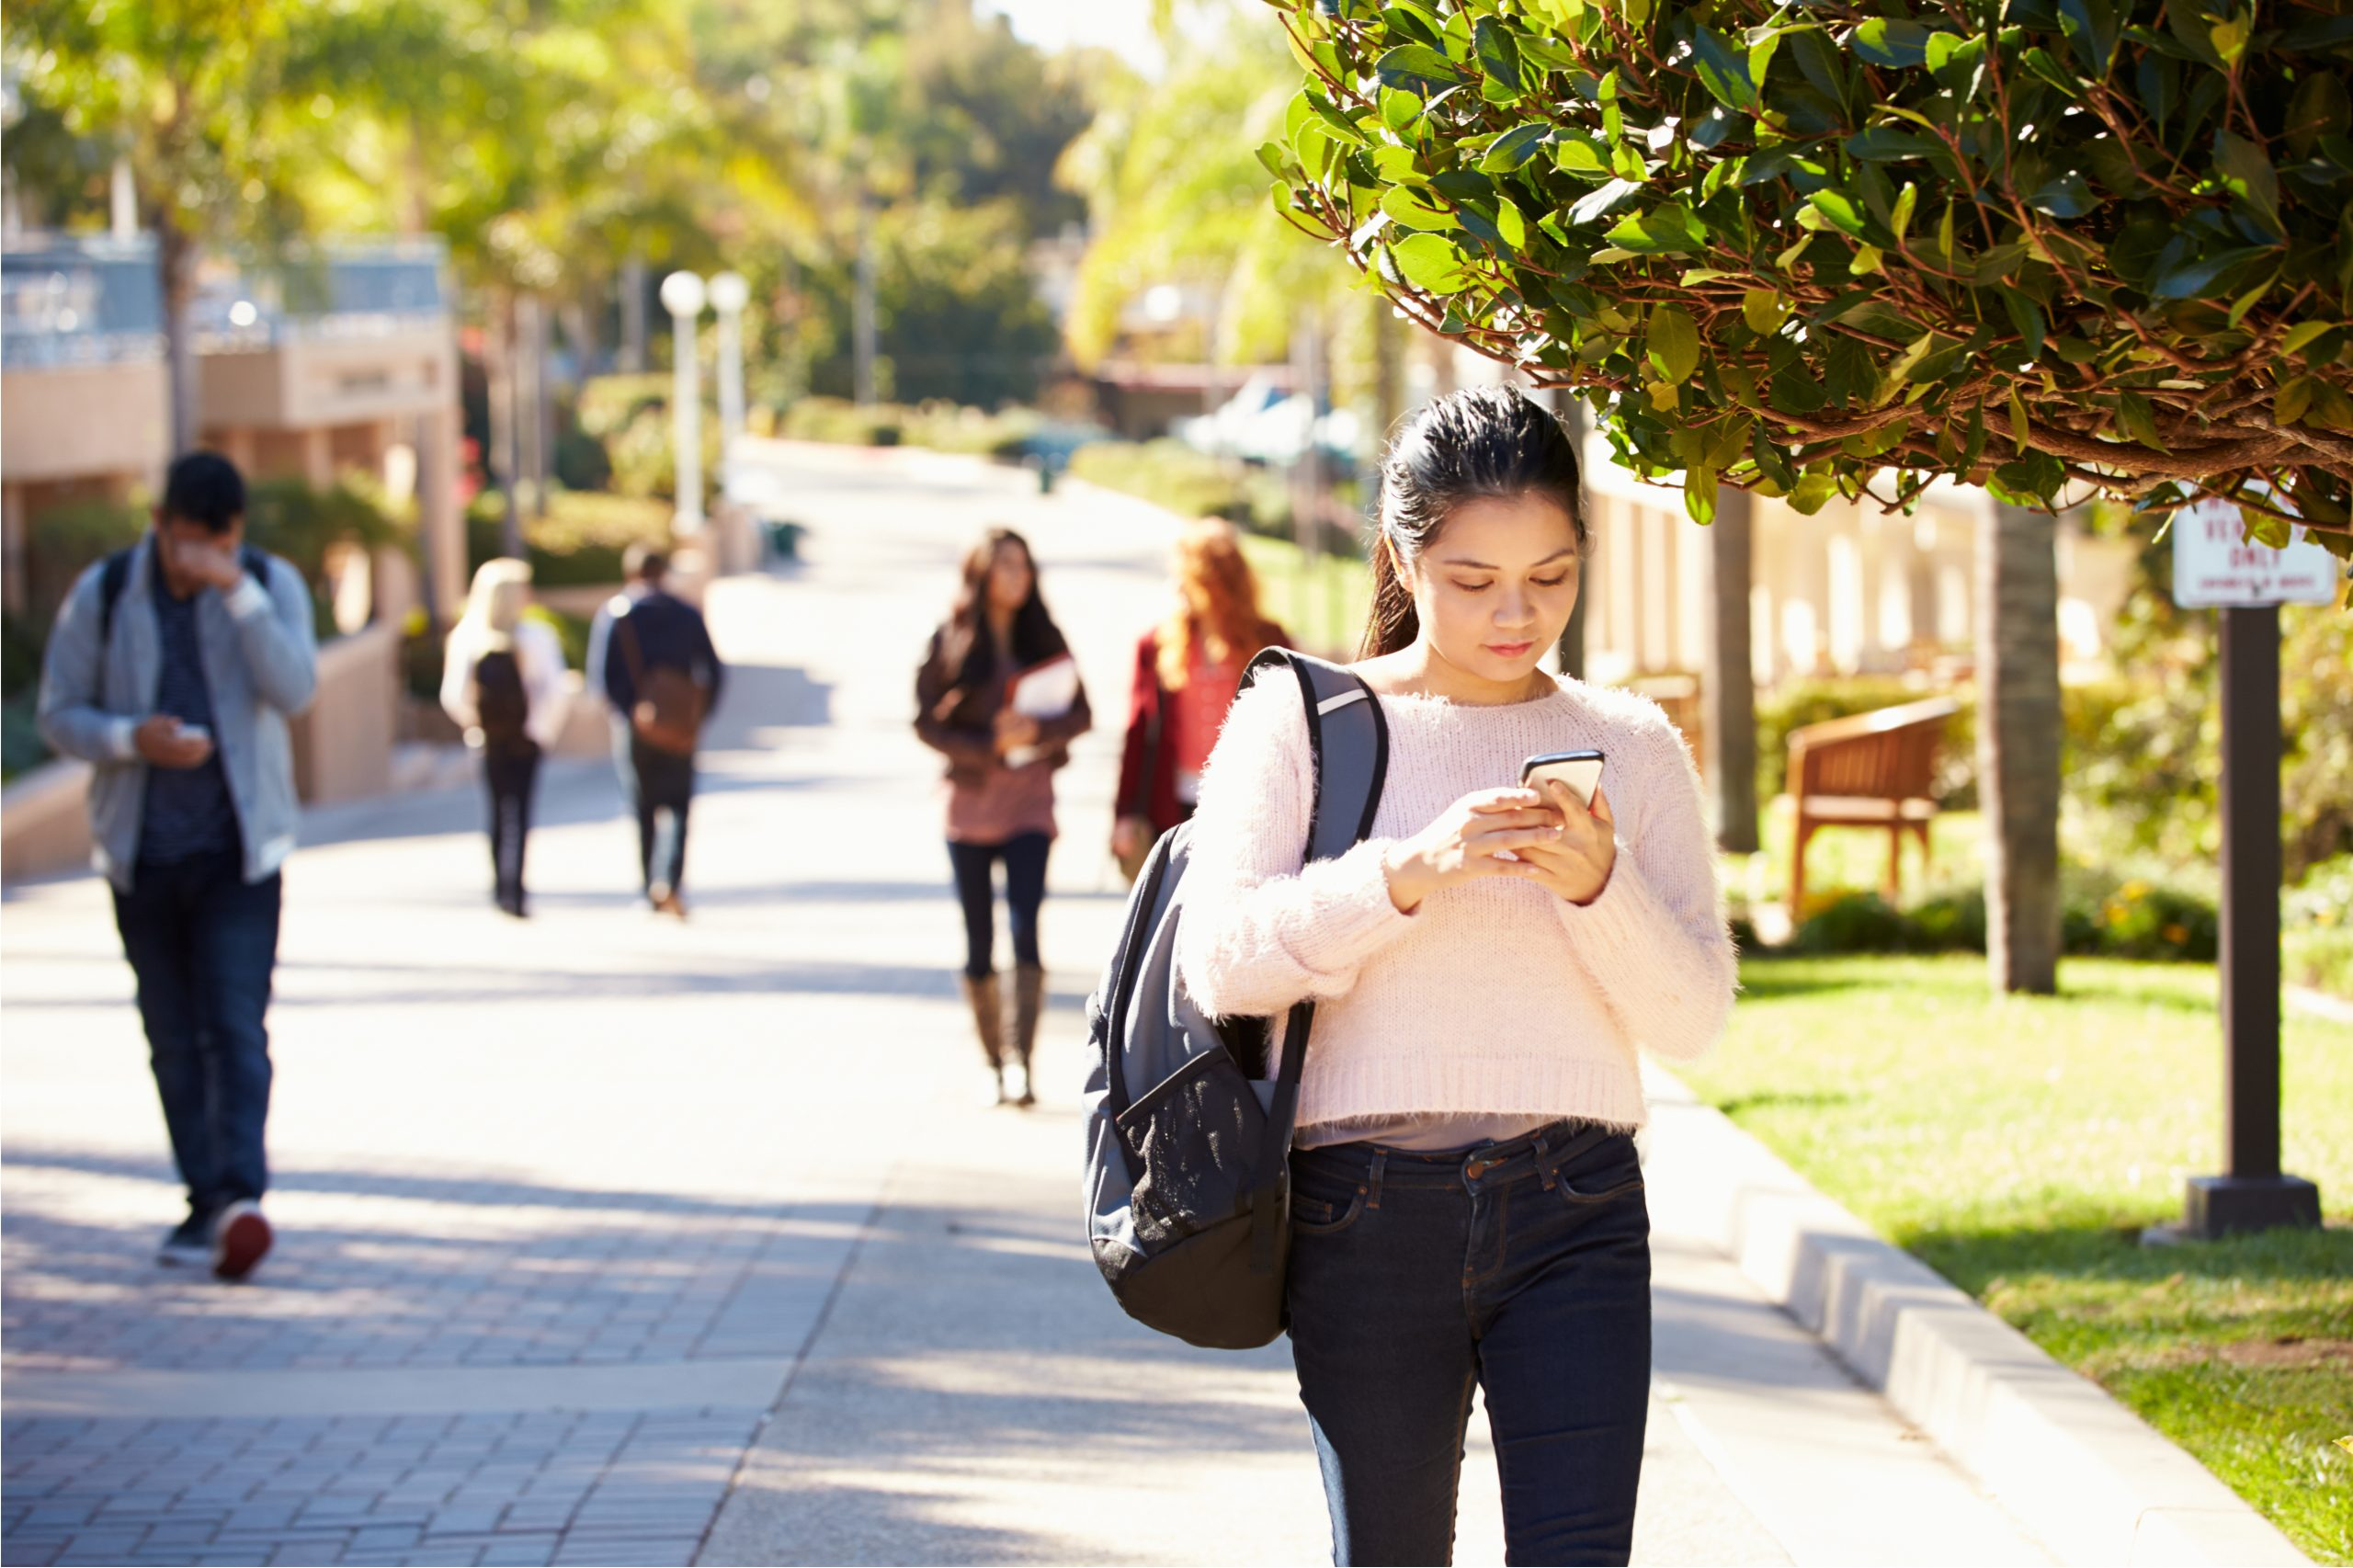 Search Marketing Strategies for Student Housing